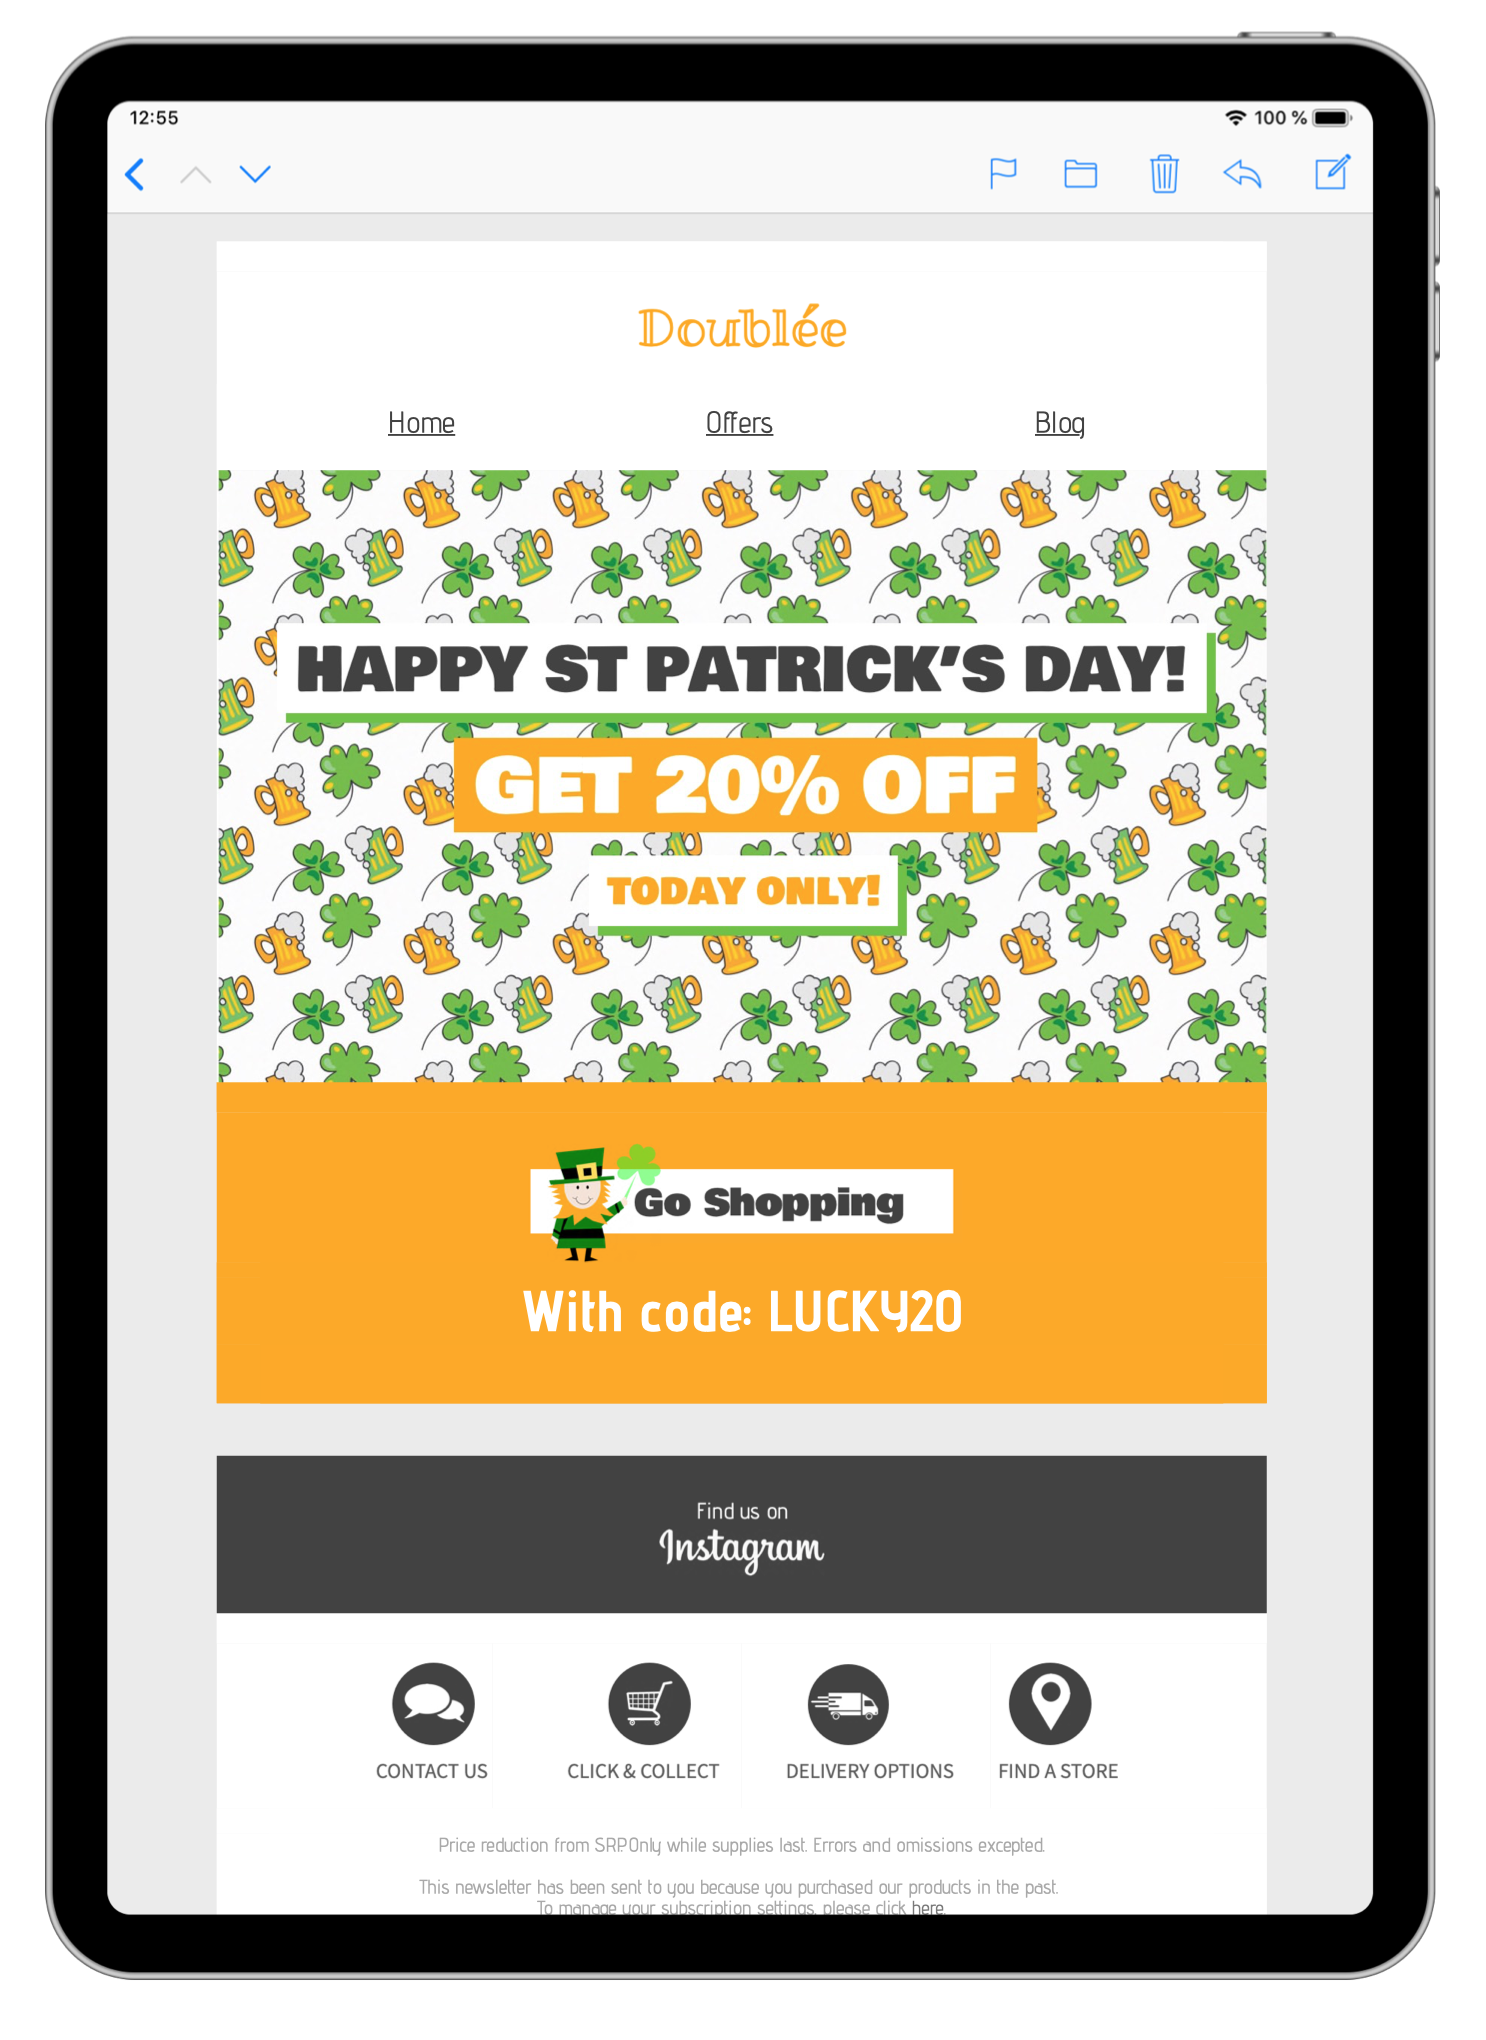 html email template for st Patricks day